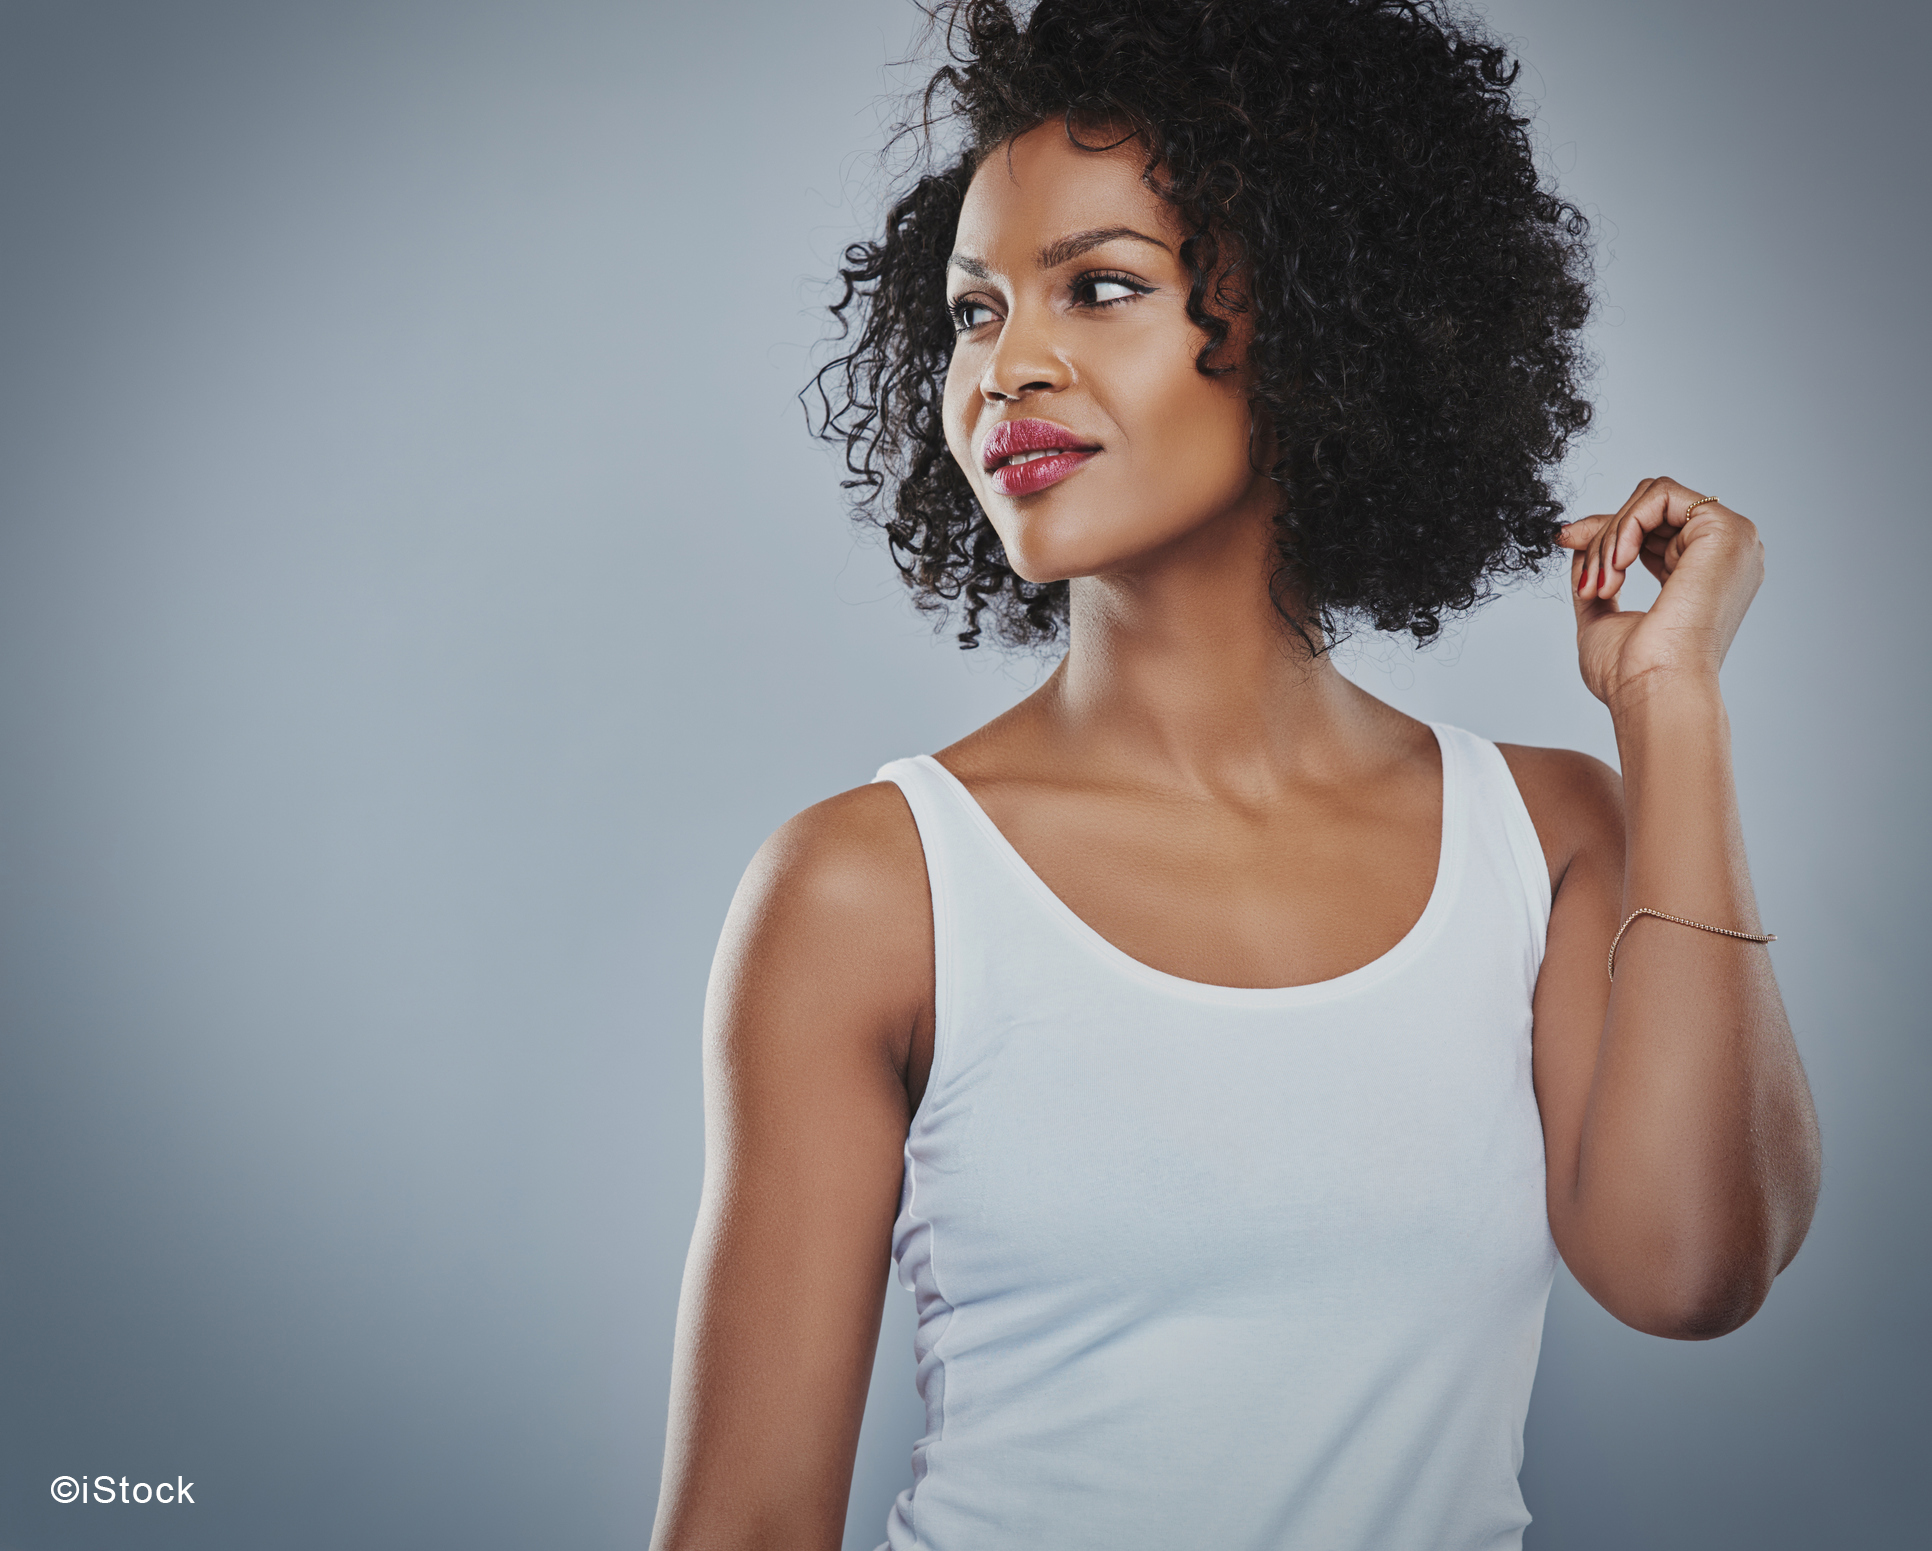 Le shrinkage en 5 questions - Niwel Beauty